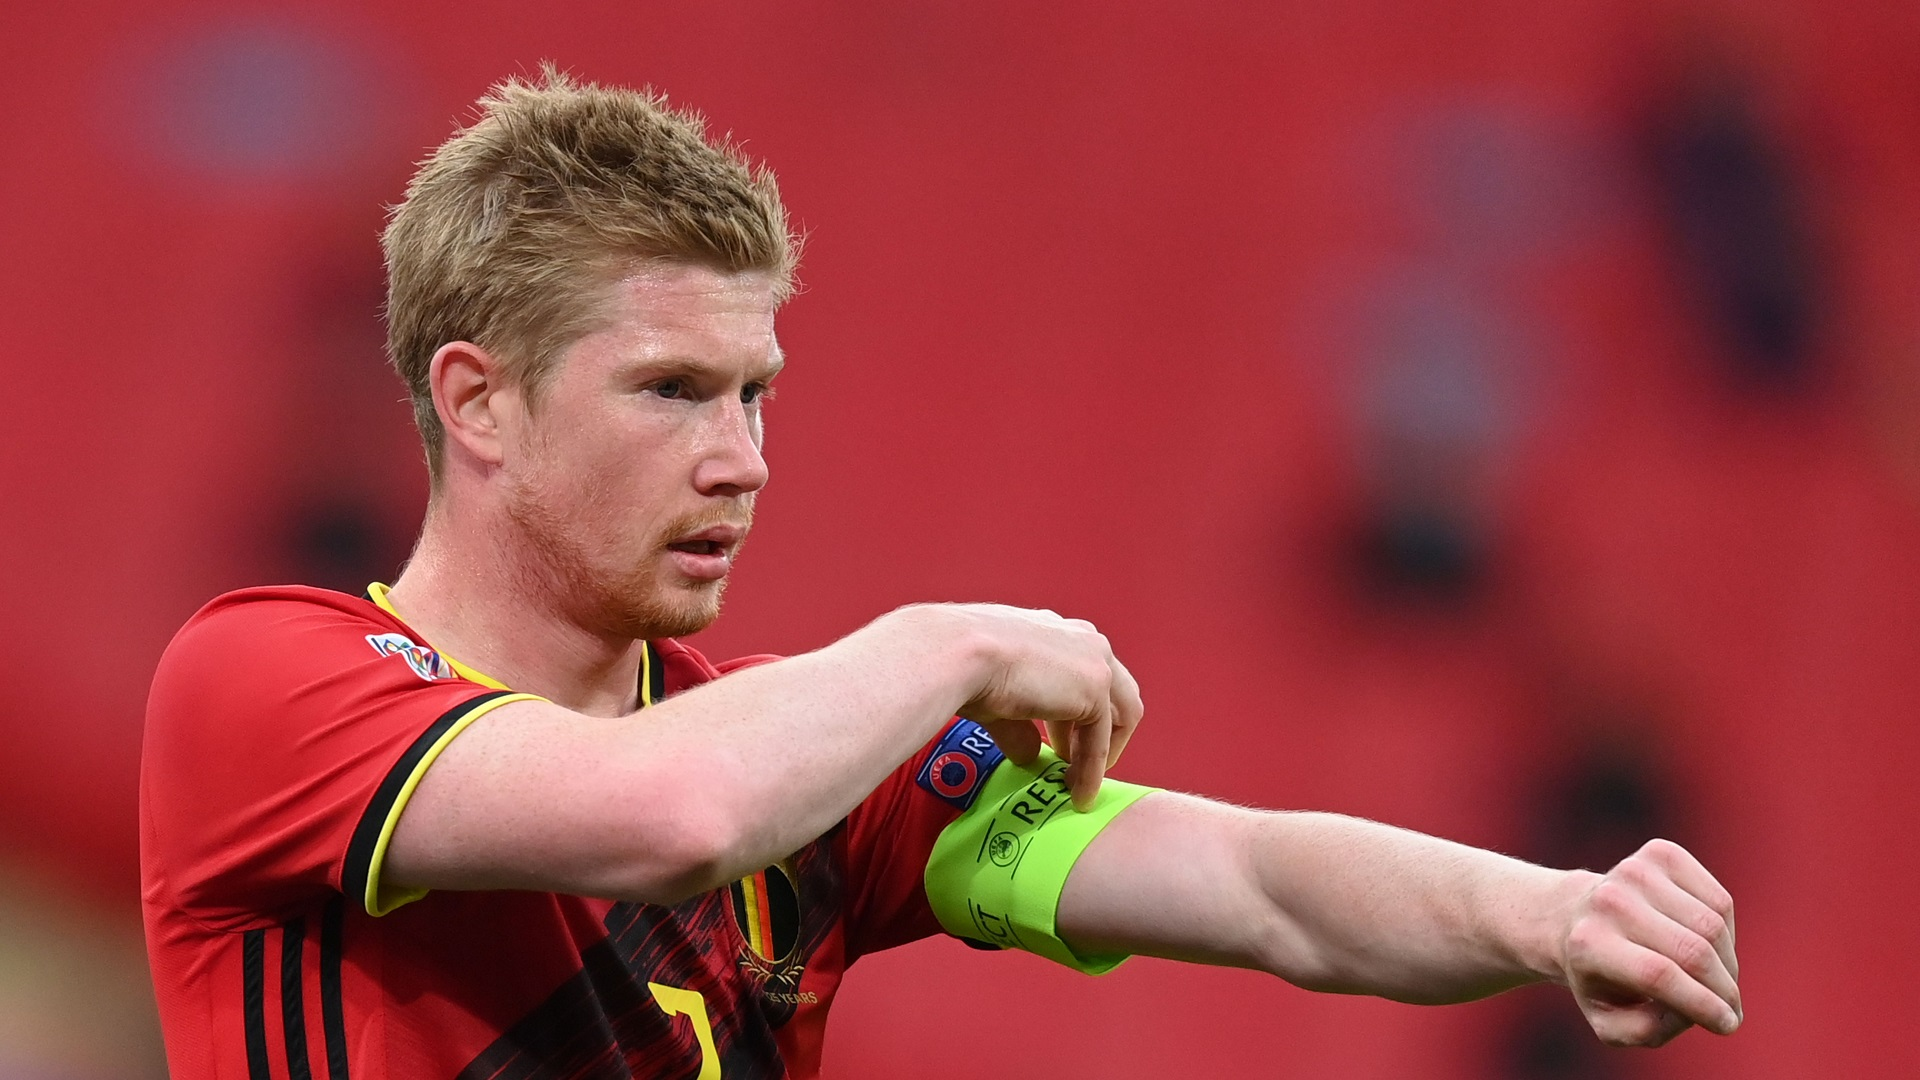 Injury scare for Man City as De Bruyne withdraws from Belgium squad |  Goal.com